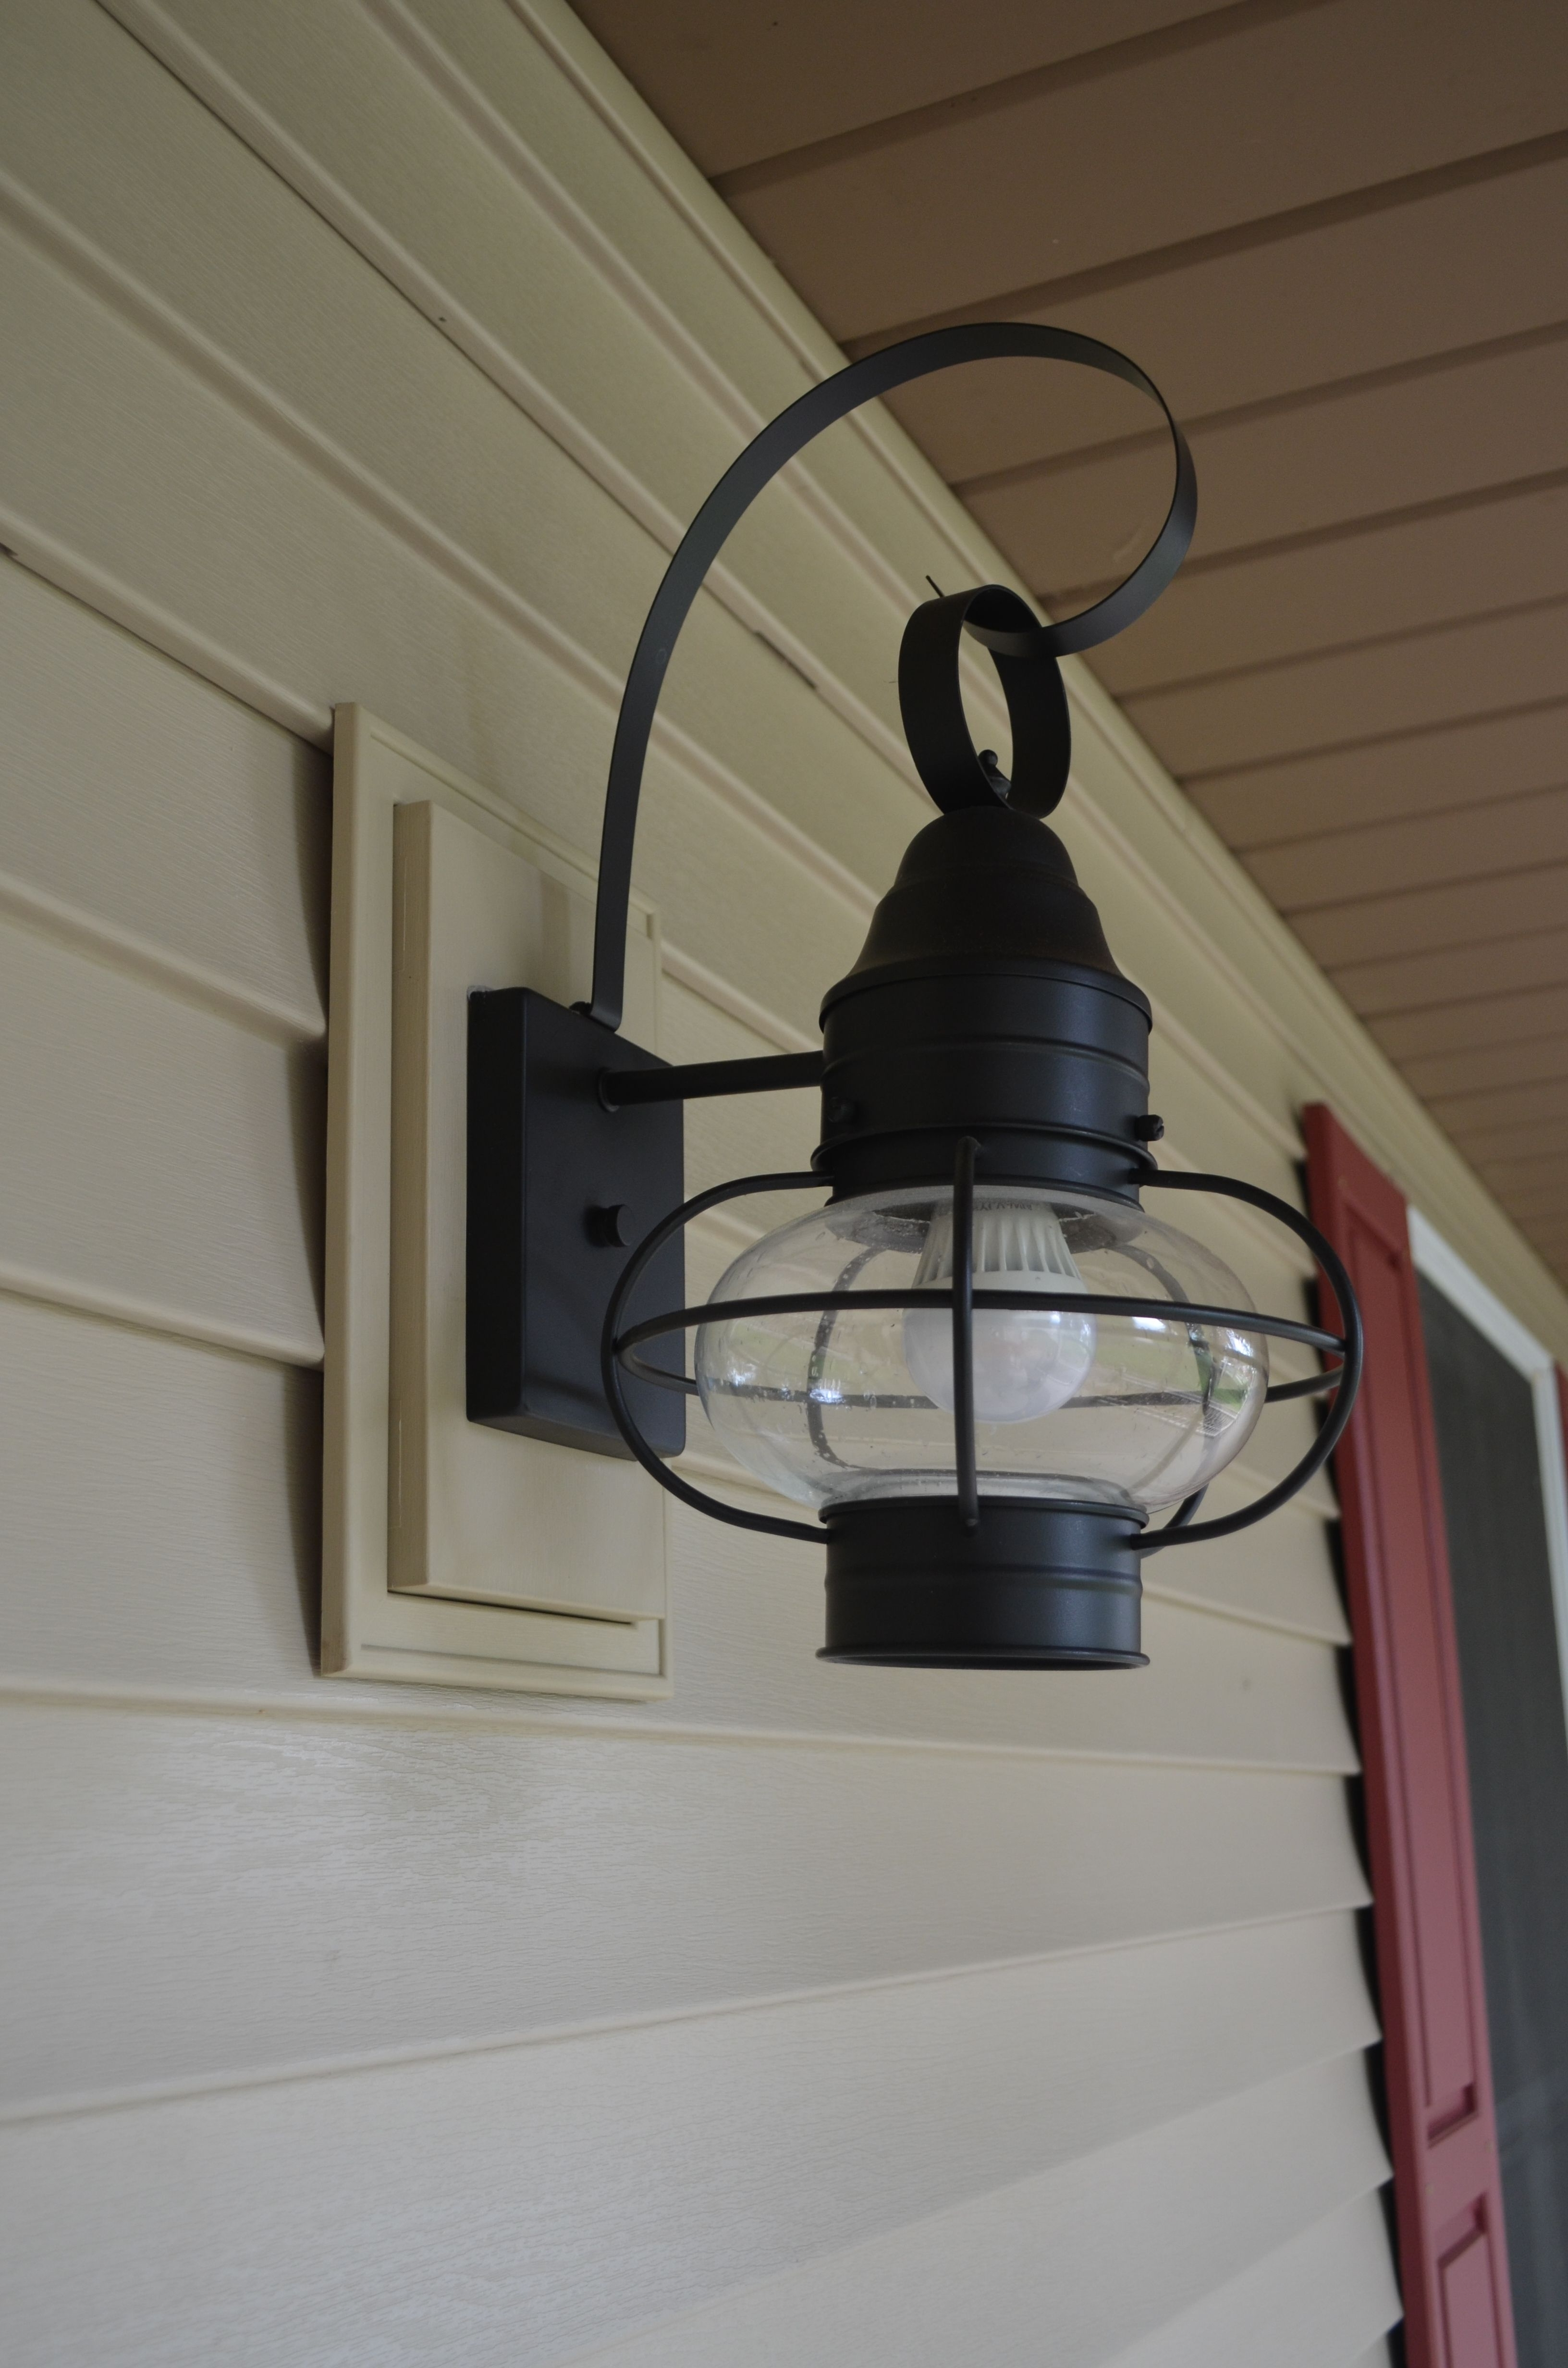 Hanging Outdoor Lights On Vinyl Siding Intended For Well Known Norandex Sterling Deluxe Vinyl Siding In Sandstone With Matching (View 9 of 20)